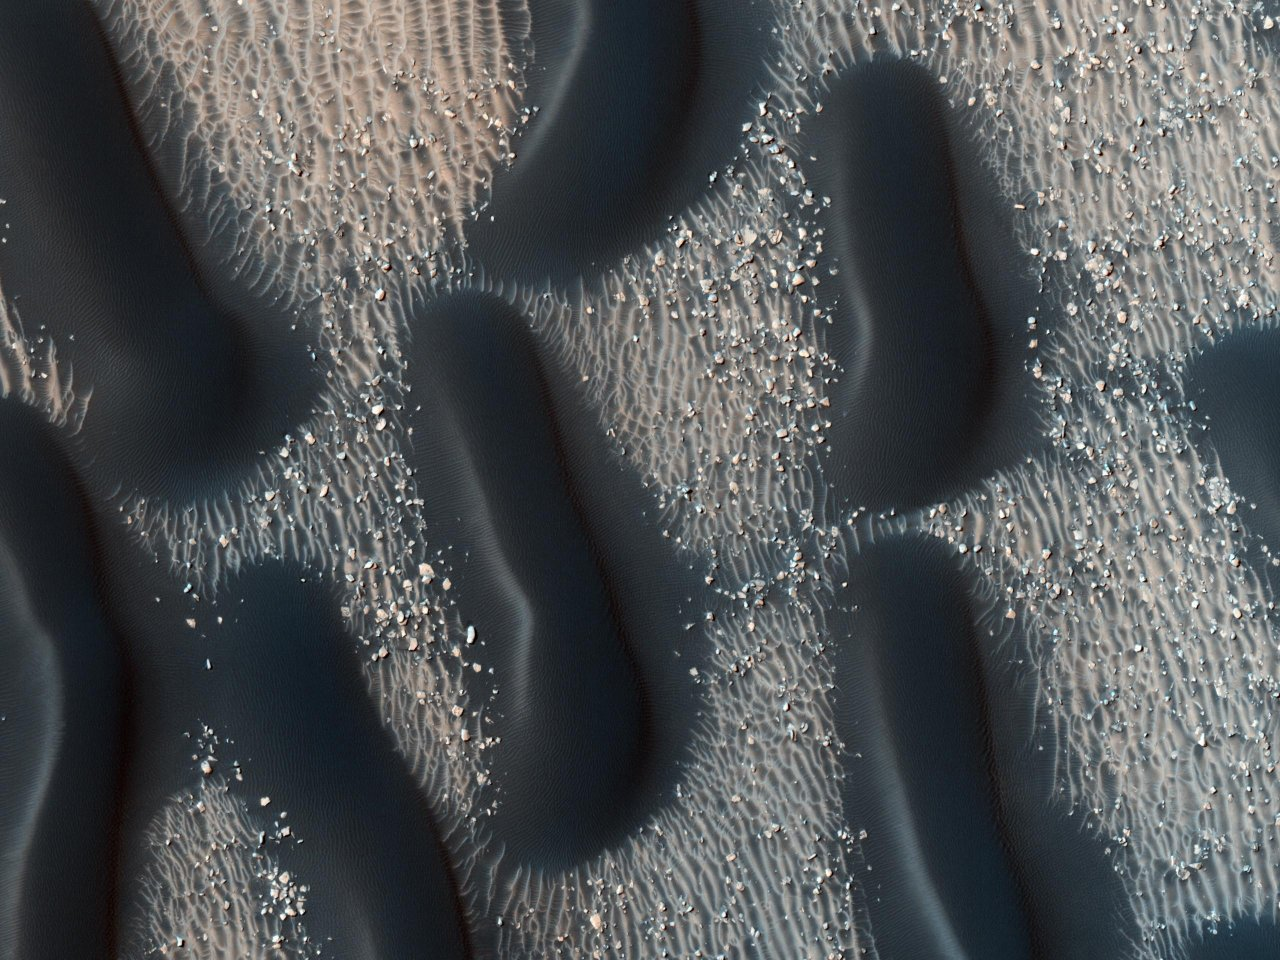 Dark dune fields of Proctor Crater, Mars